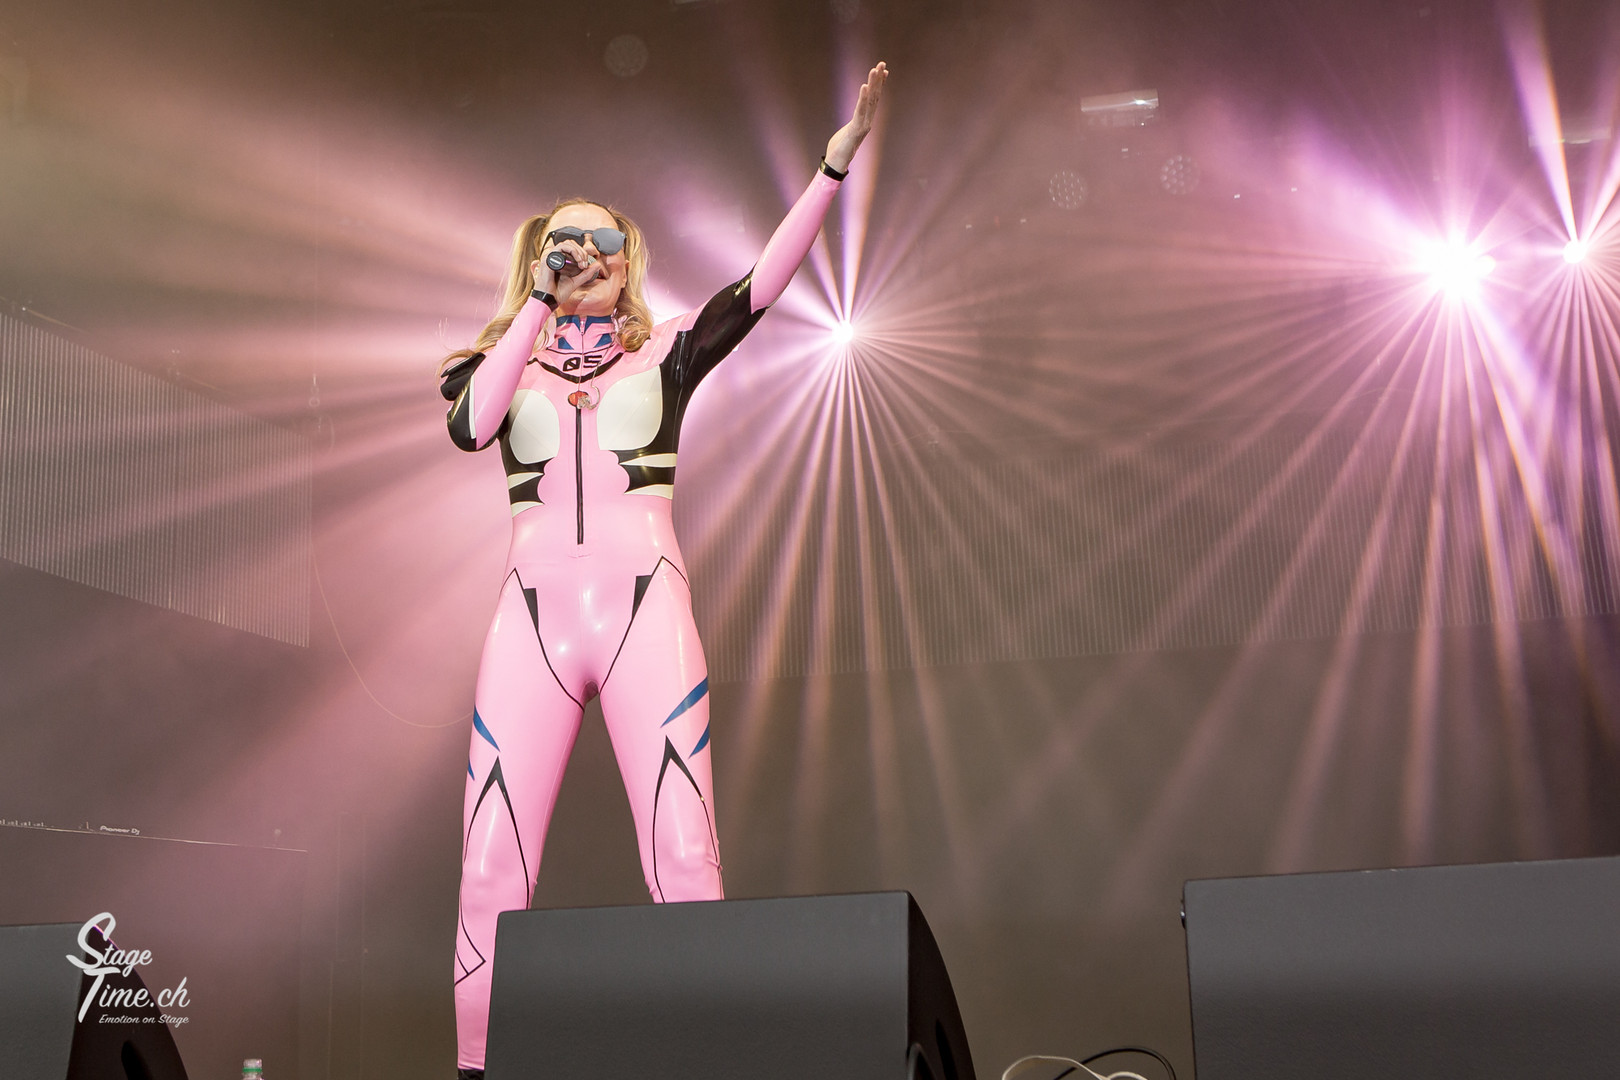 Whigfield_©Stagetime.ch.jpg